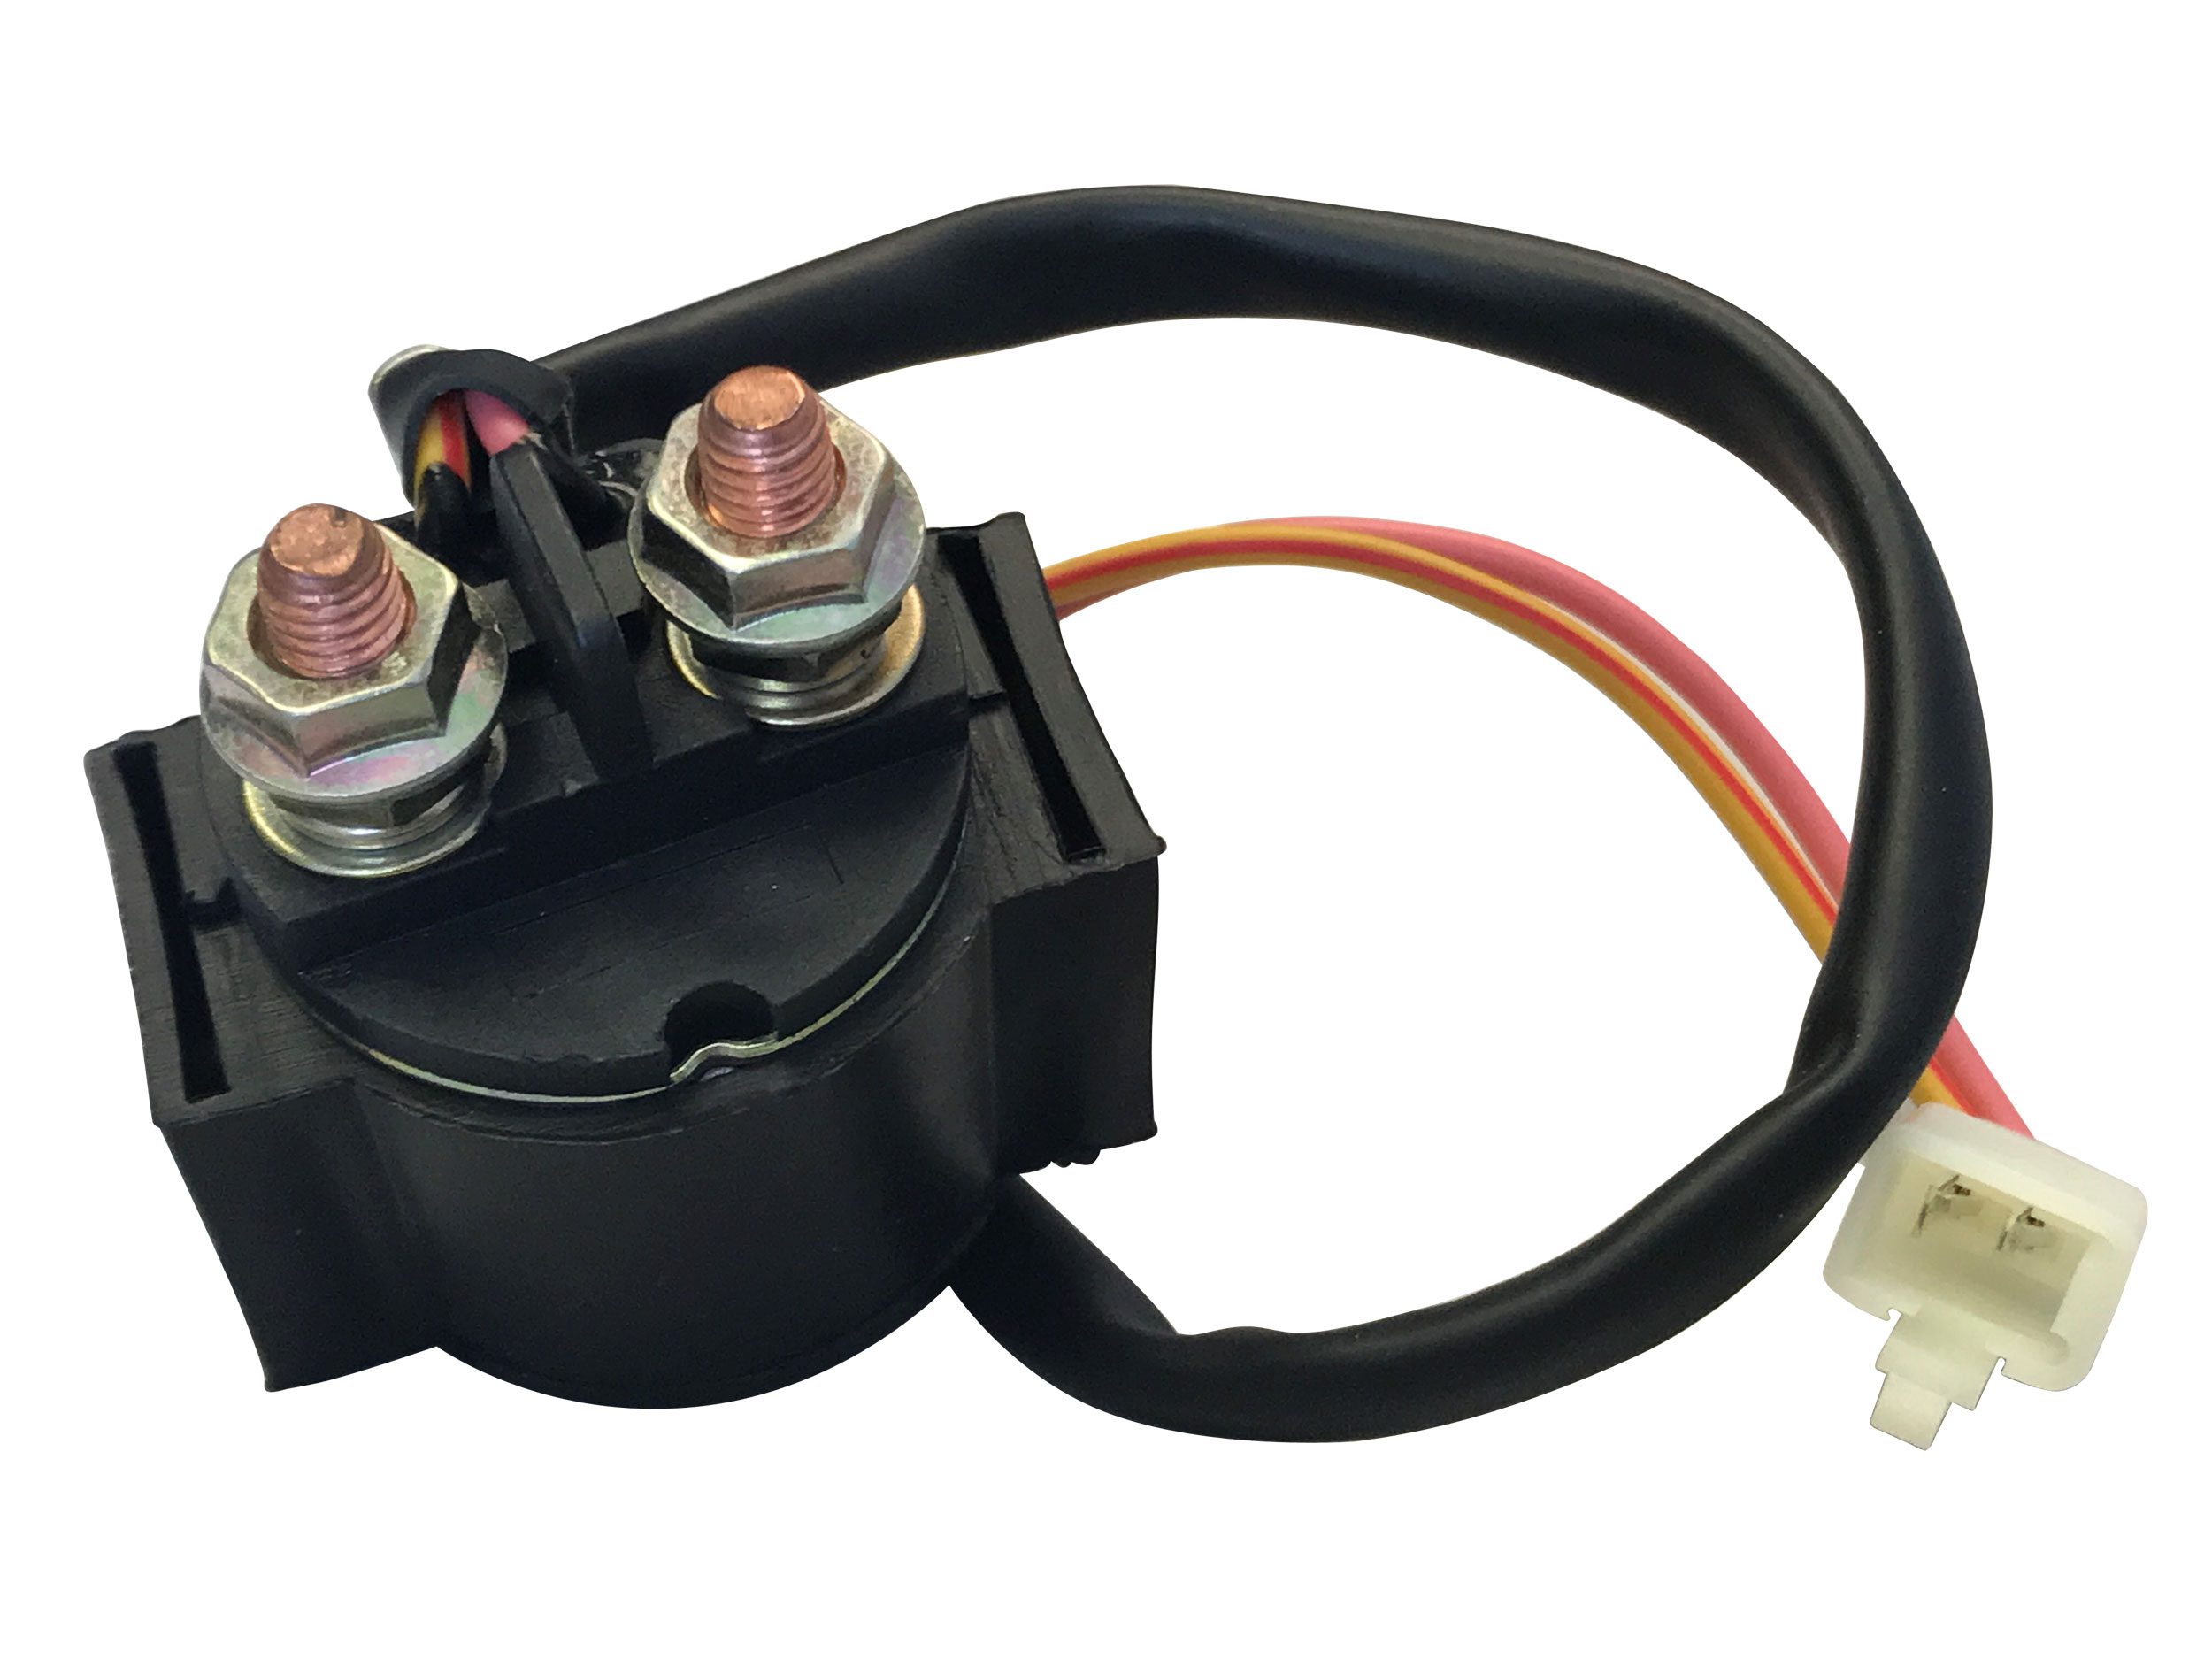 Starter Relay / Solenoid for GY6, 150cc Engine | 05777 | BMI Karts And Parts